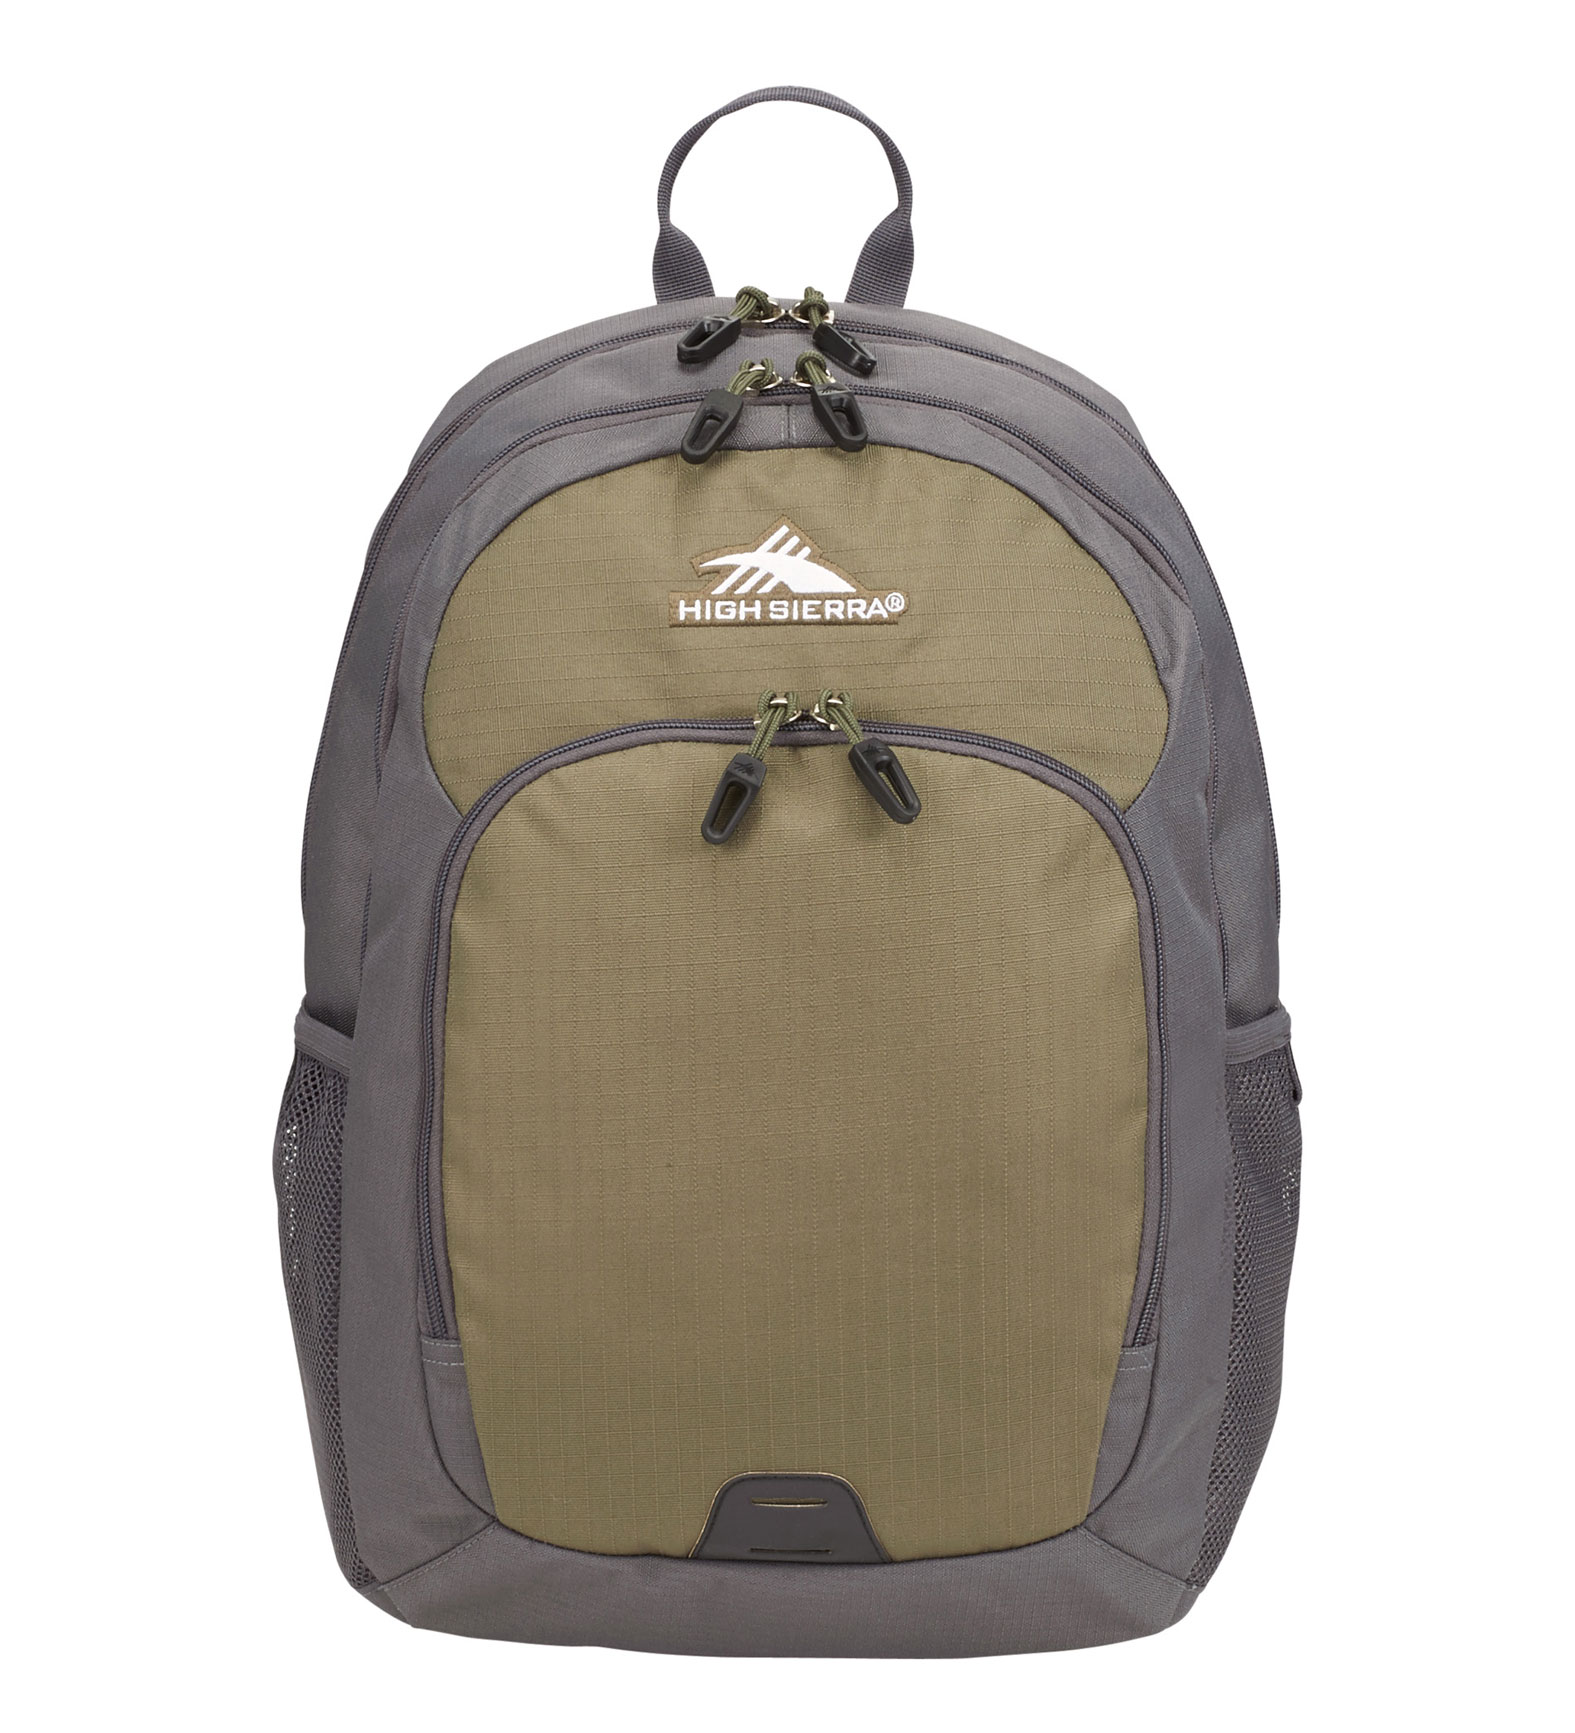 High Sierra Diao 15 Computer Backpack